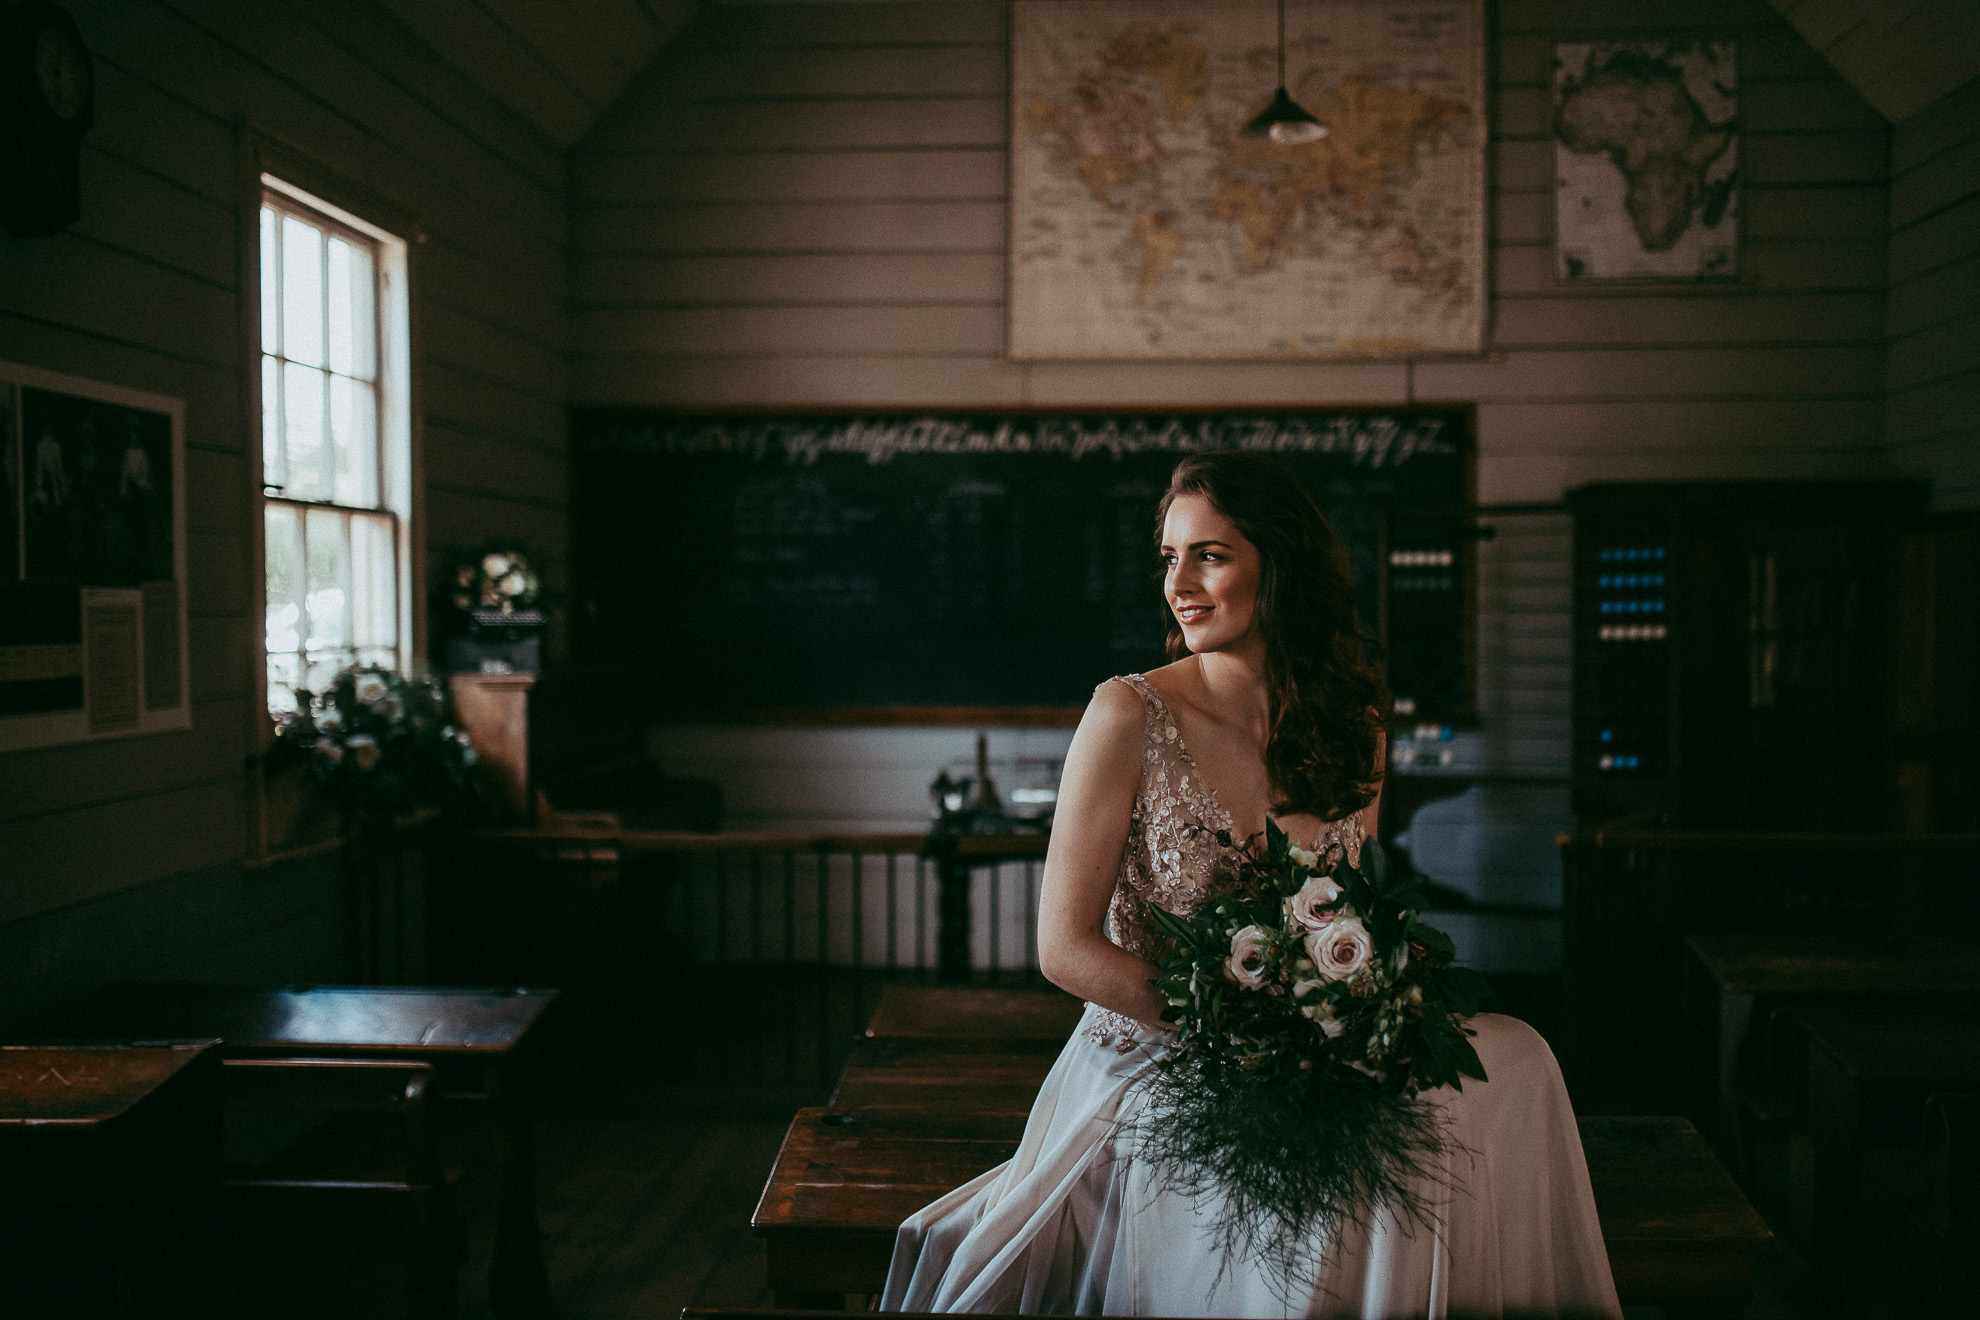 styled-shoot-by-levien-330.JPG